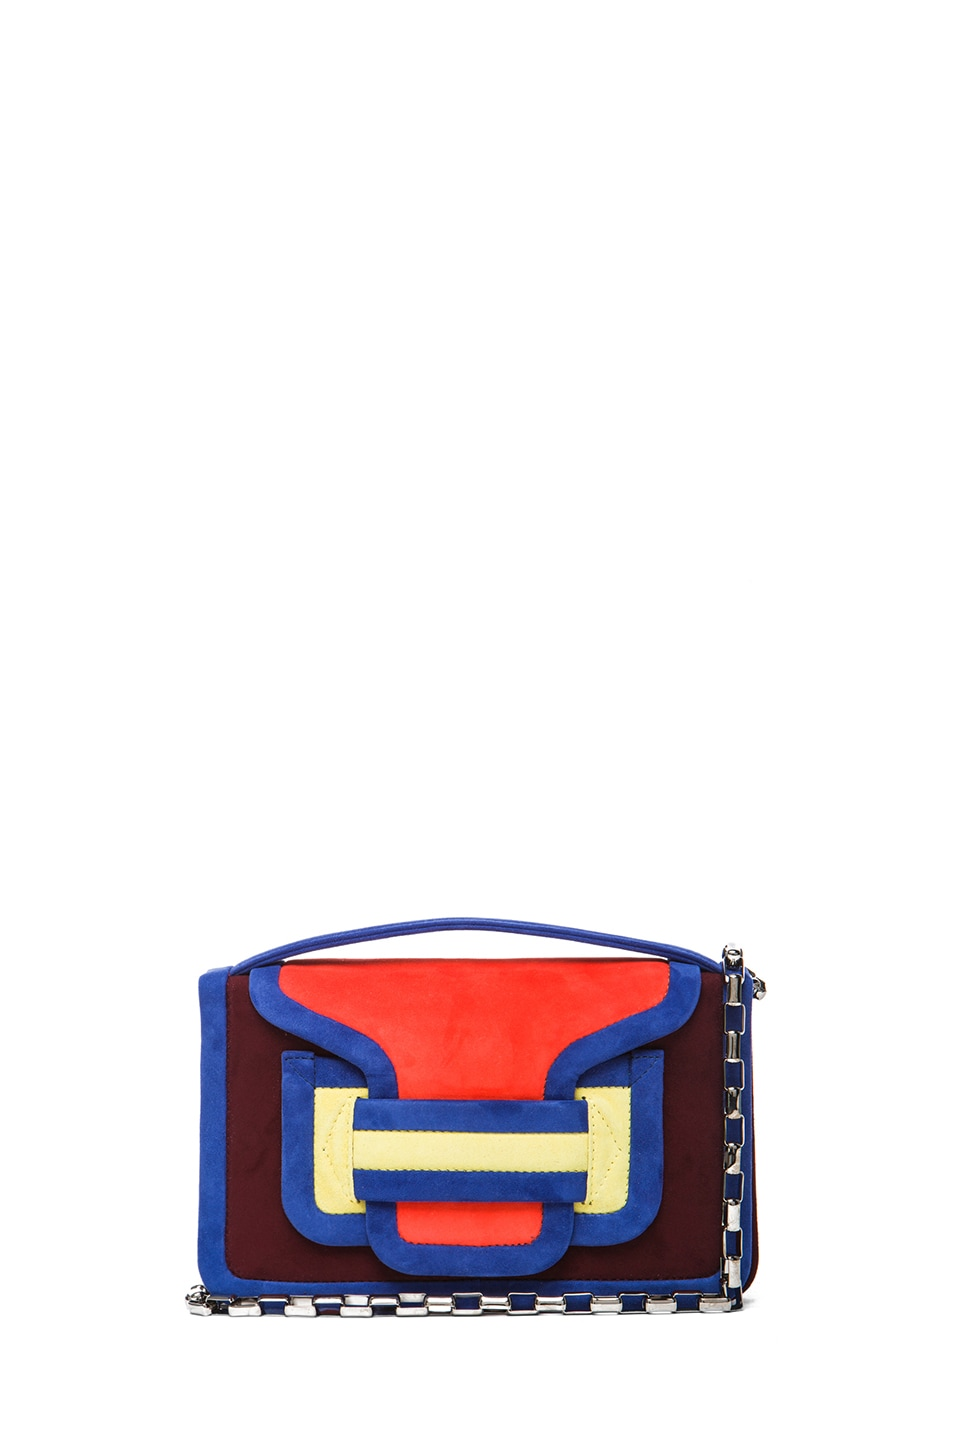 Image 1 of Pierre Hardy Color-block Suede Bag in Quadri Red